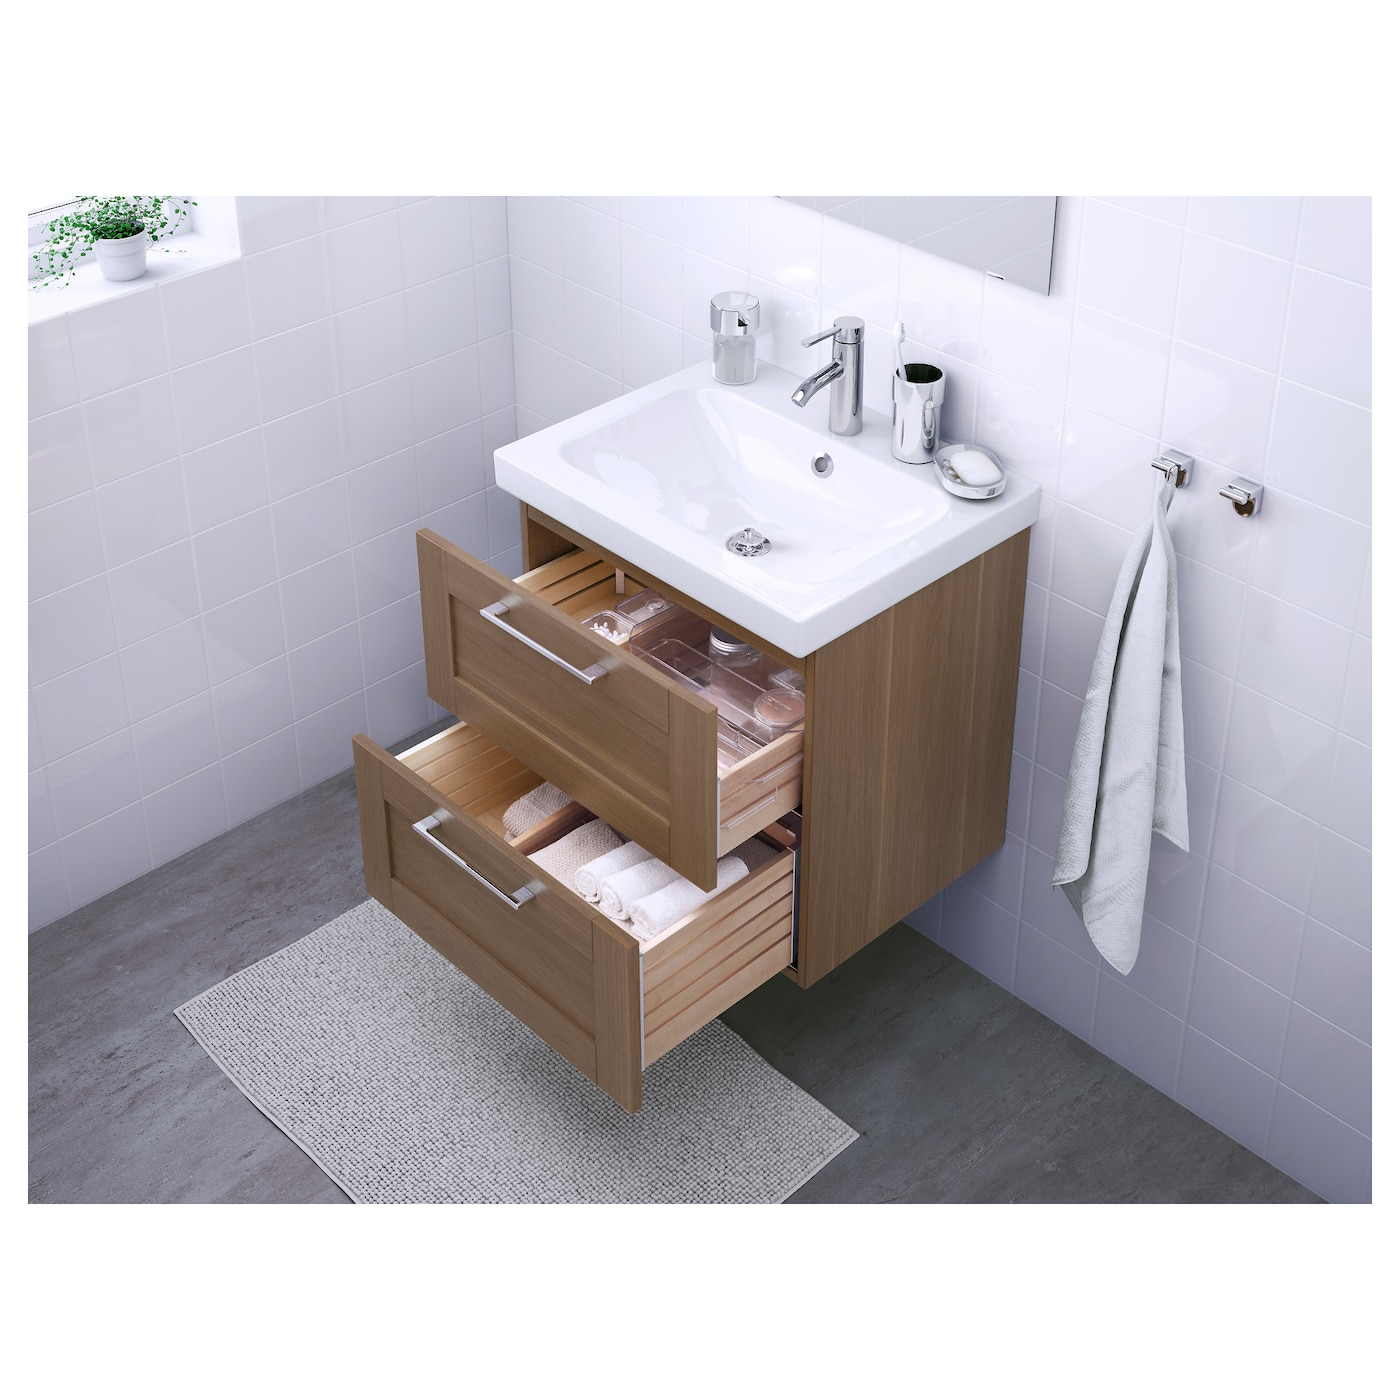 Odensvik godmorgon wash stand with 2 drawers walnut effect for Meubles salle de bain ikea godmorgon